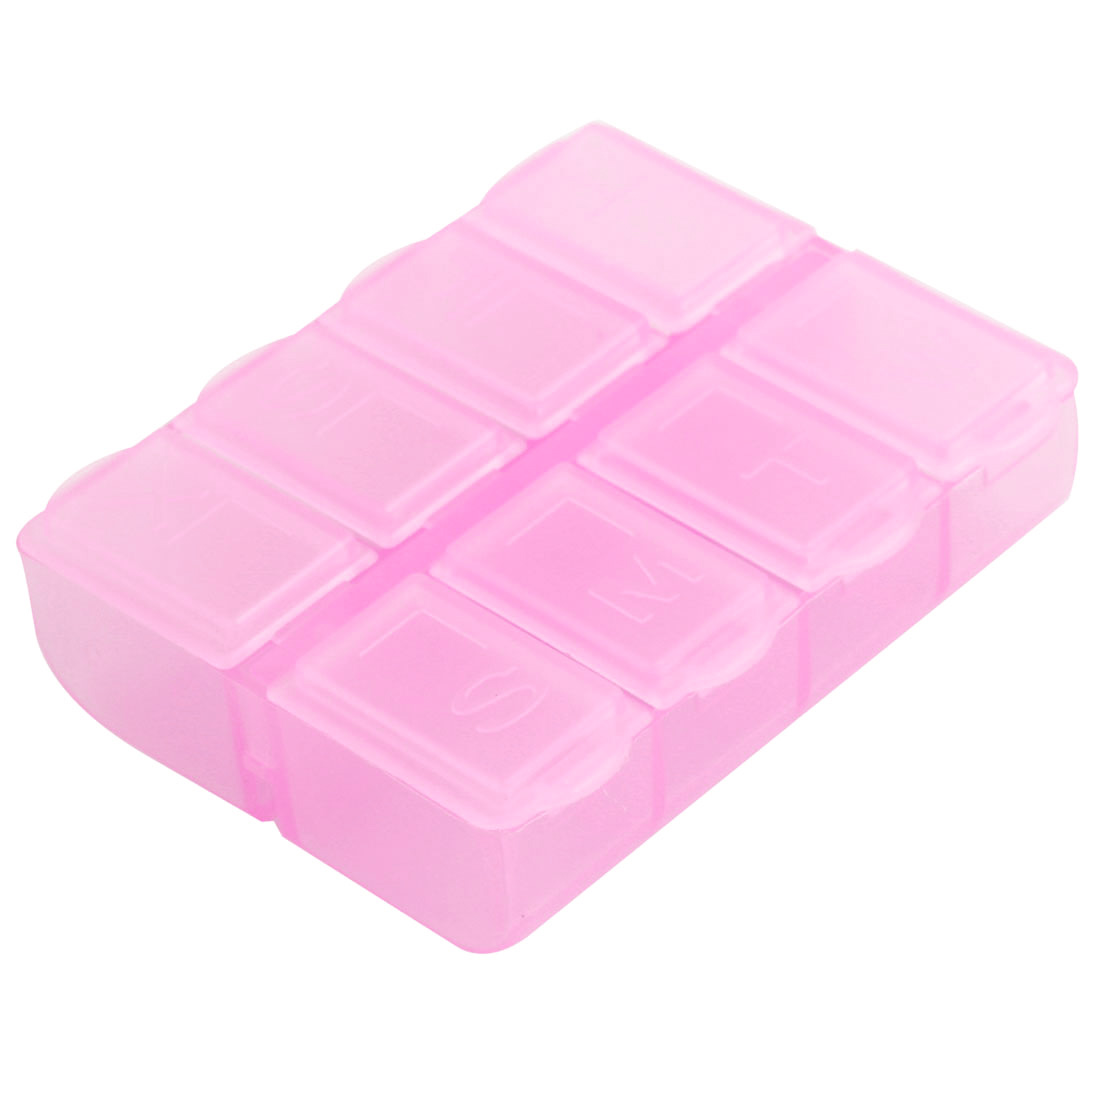 Travel Pink Plastic Rectangle 8 Compartments 7 Days Medicine Pill Box